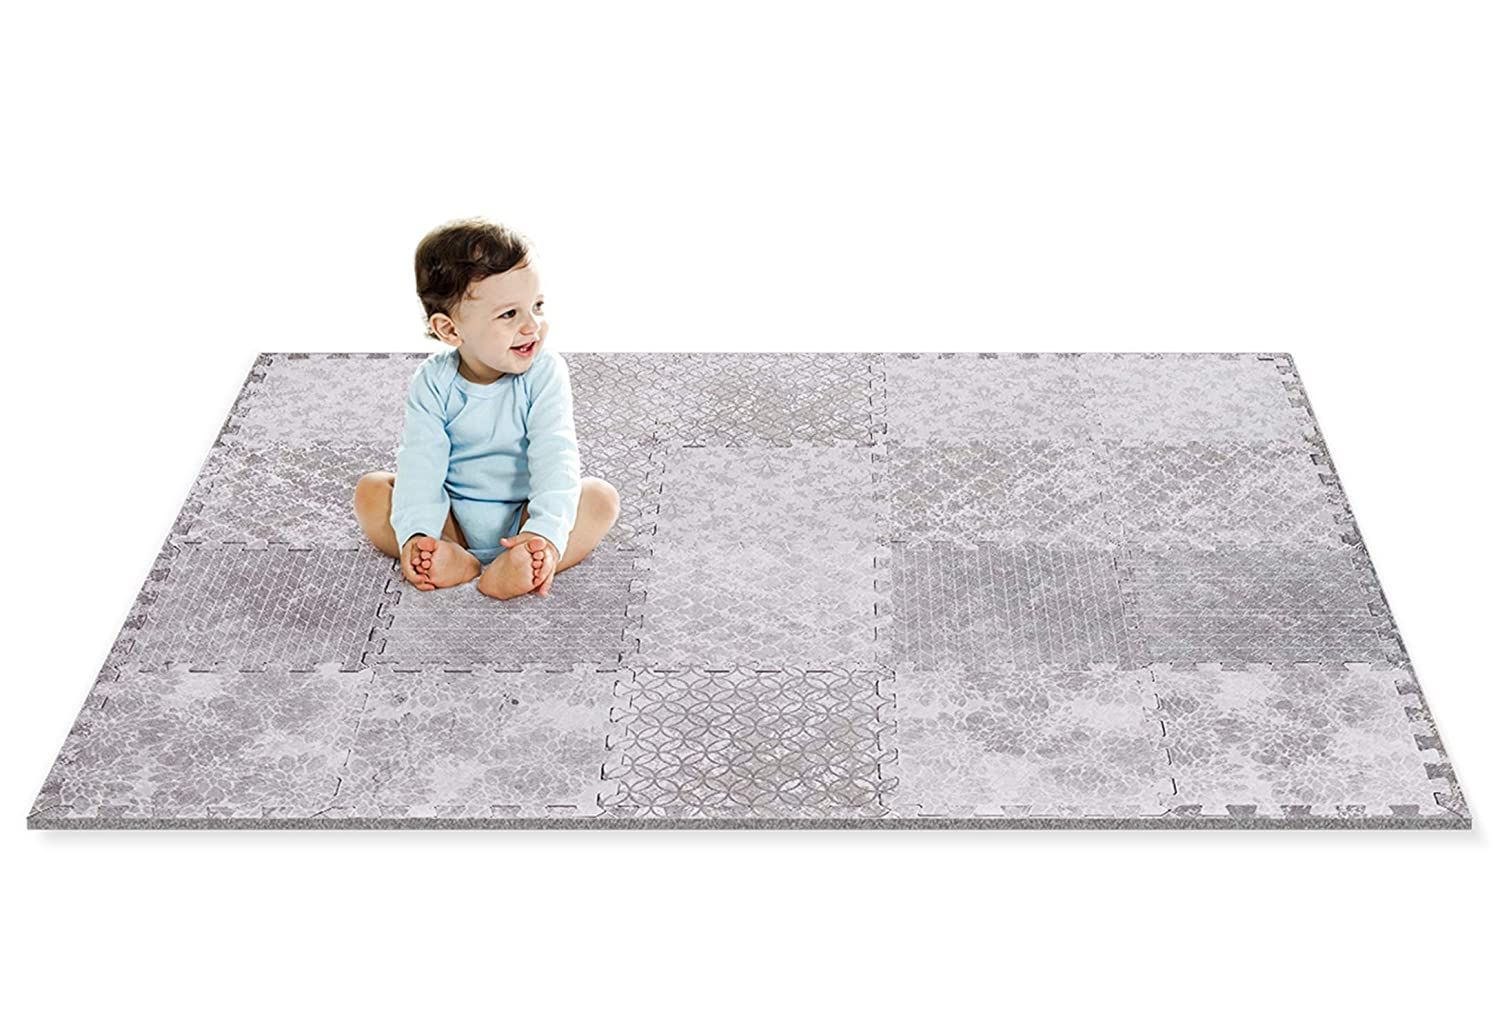 Designer Baby Play Mat - Thick Playmat Baby Mat with Non-Toxic Safety Soft Foam - Baby Floor Mats Tiles Gym for Infants, Babies, Crawling